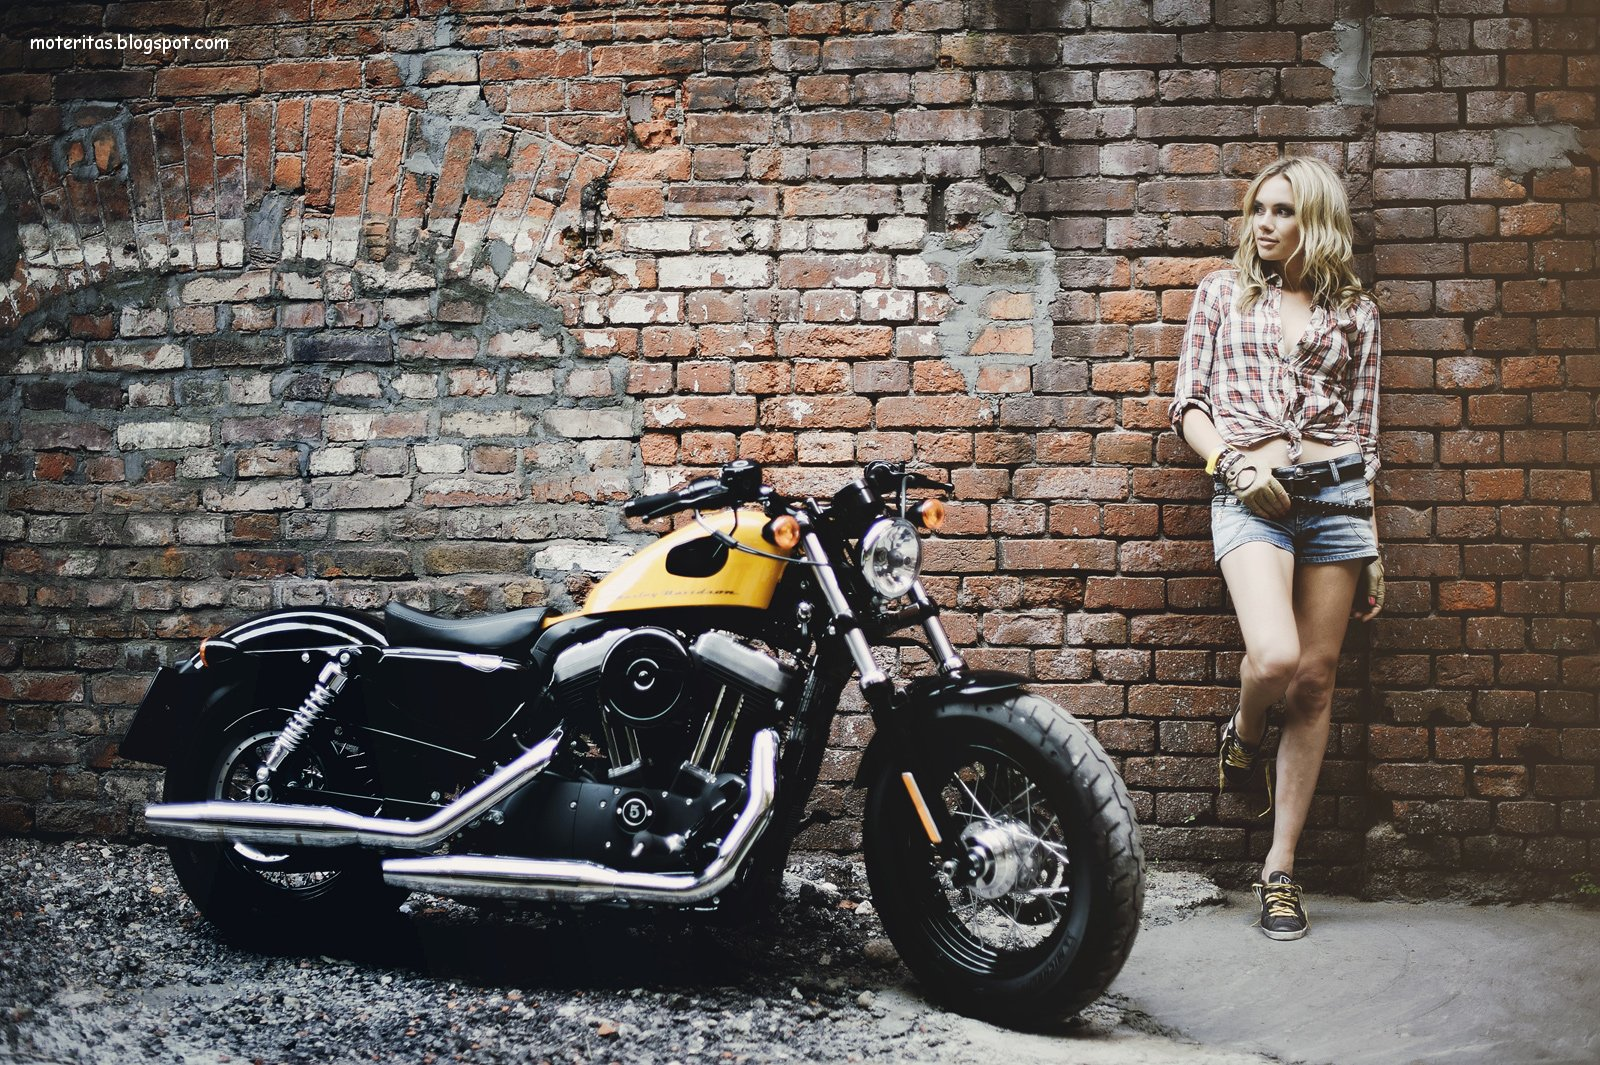 Motos y mujeres resolucin HD Harley Davidson Forty Eight sportster 1600x1065